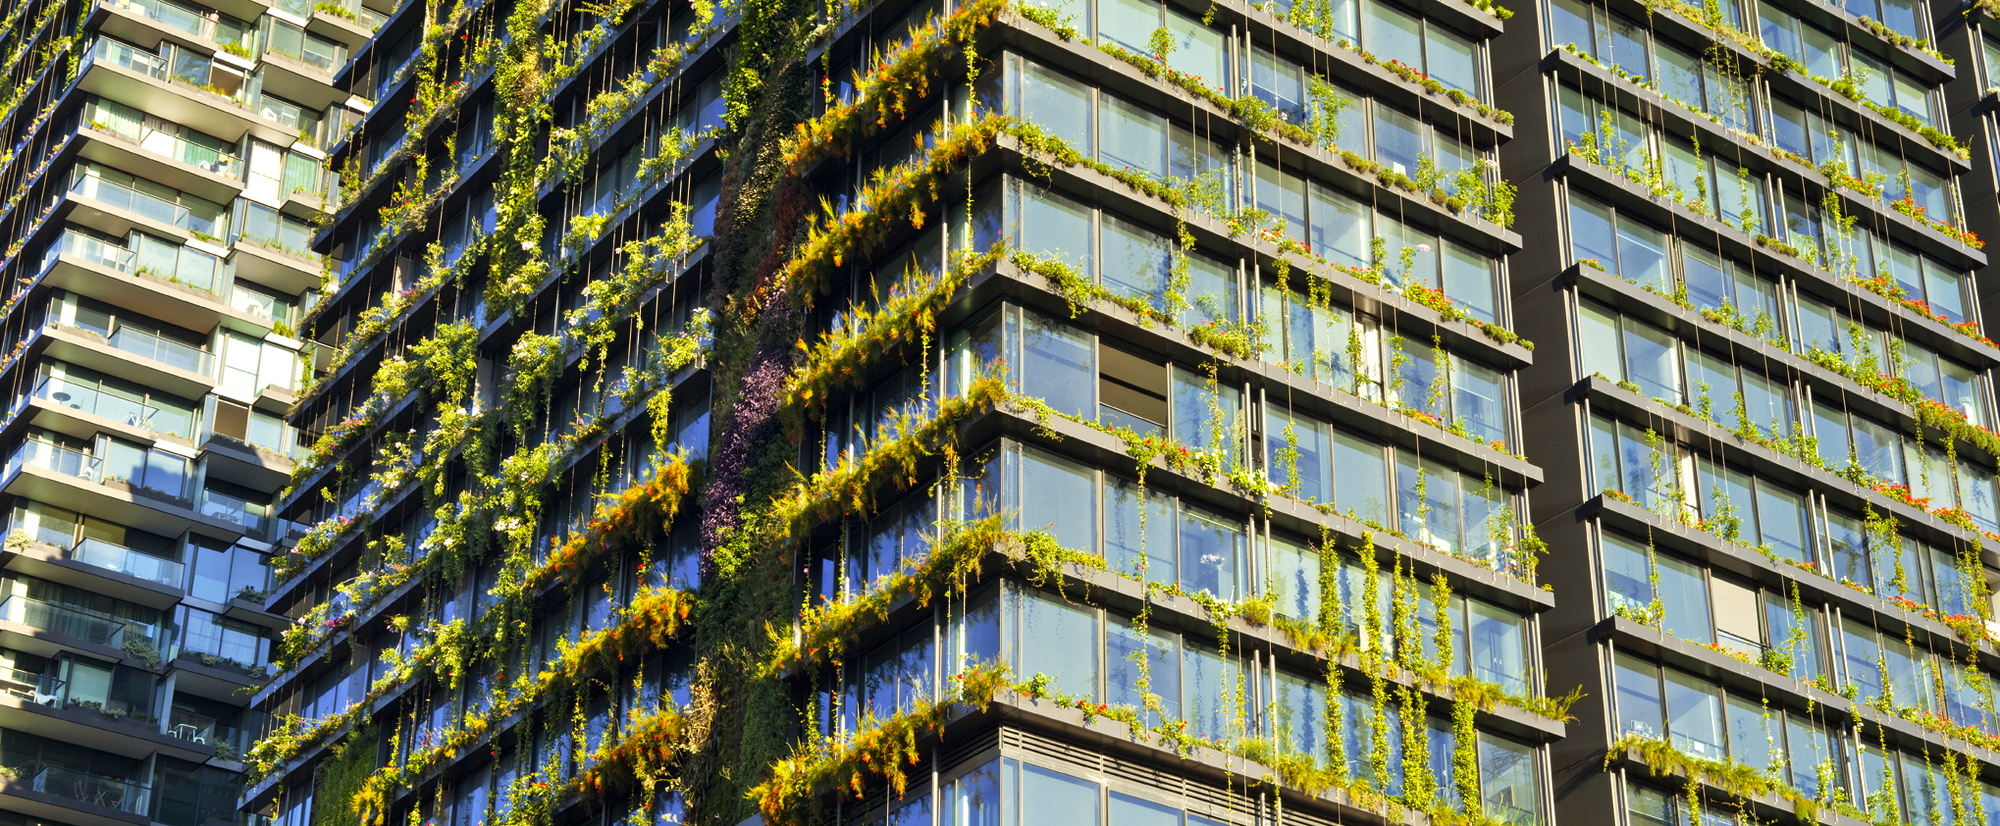 The World S Tallest Vertical Garden Lives And Breathes In